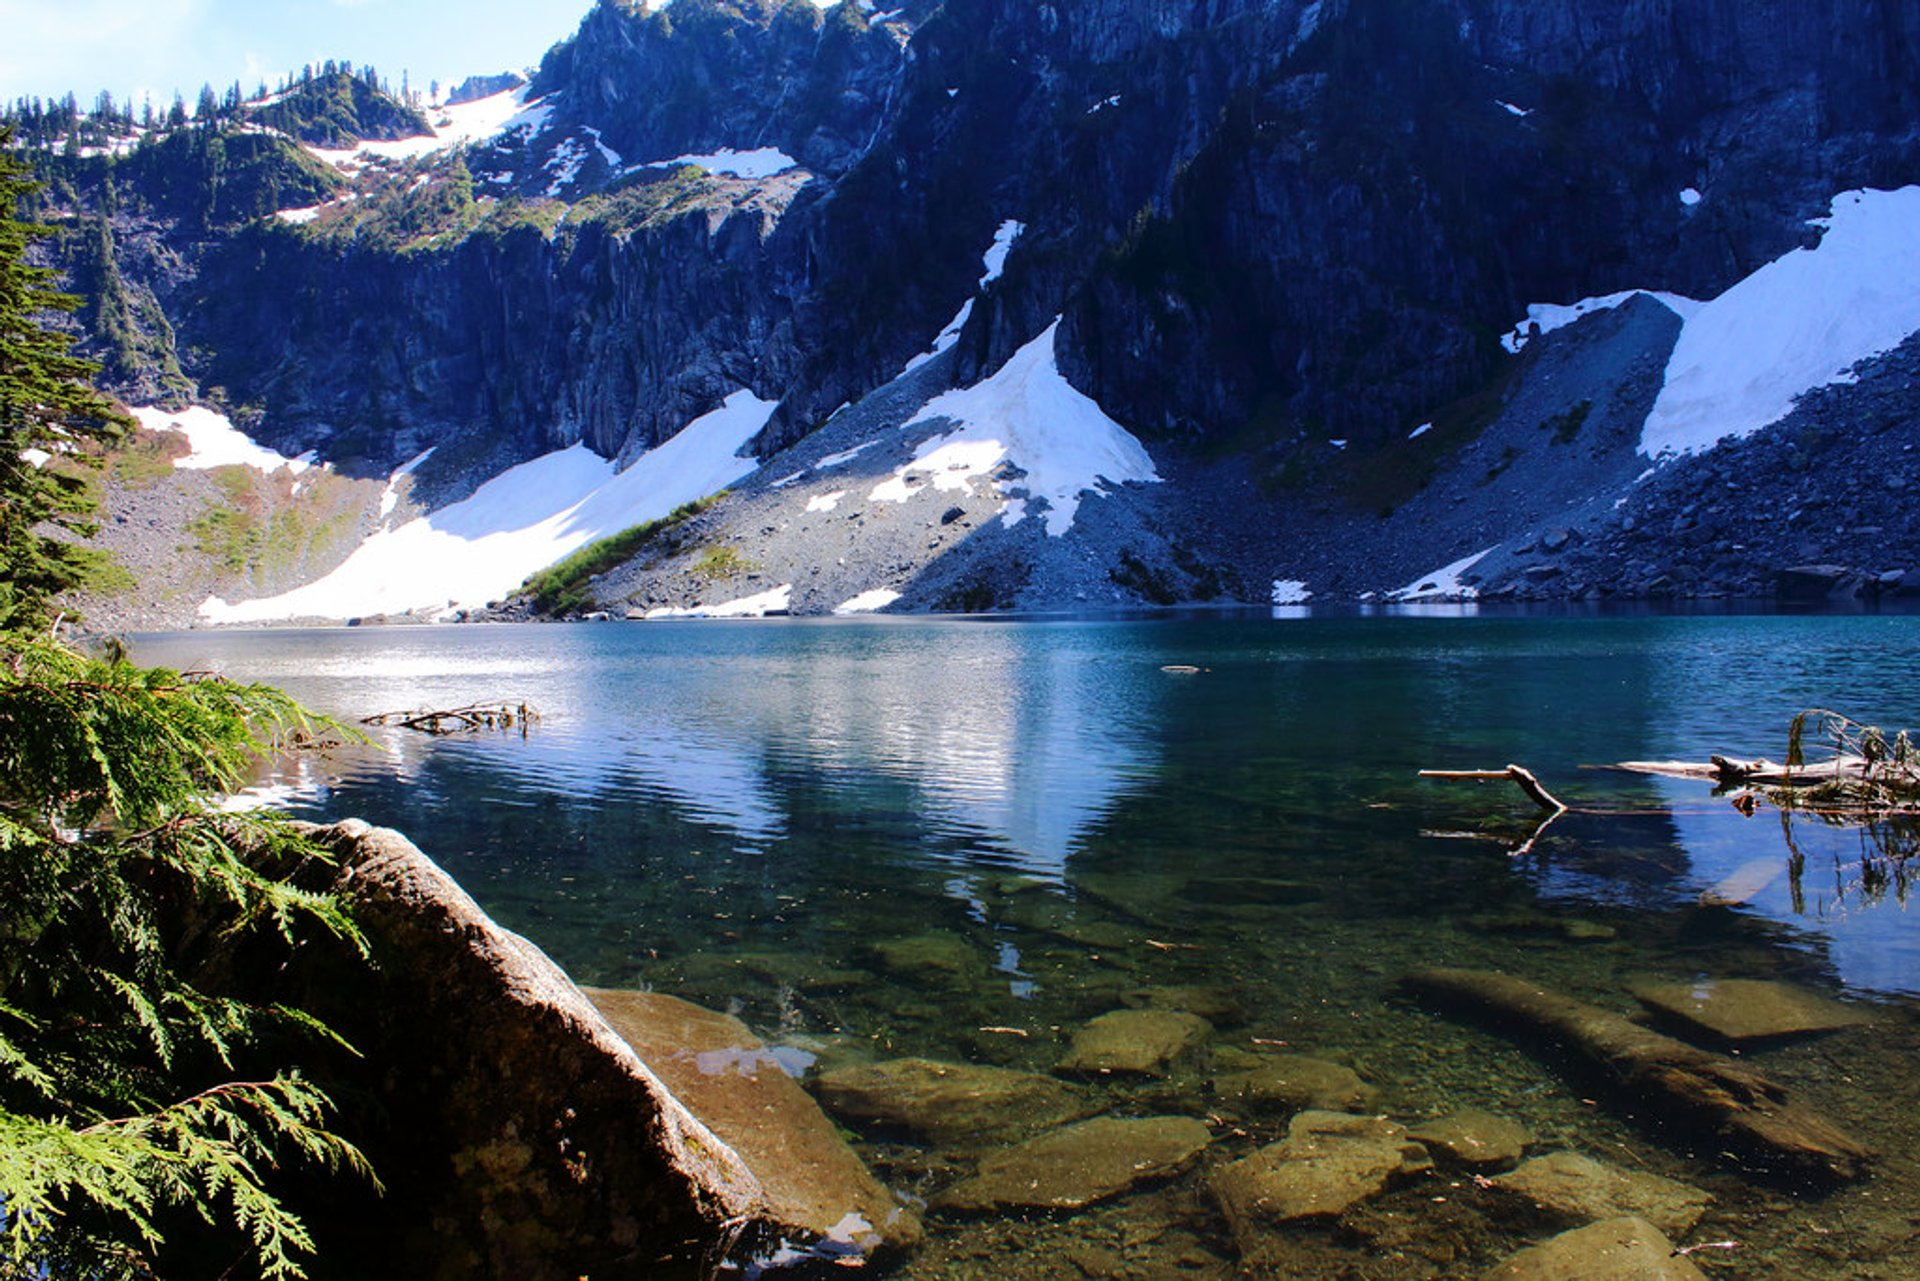 Best time for Lake Serene & Bridal Veil Falls 2019